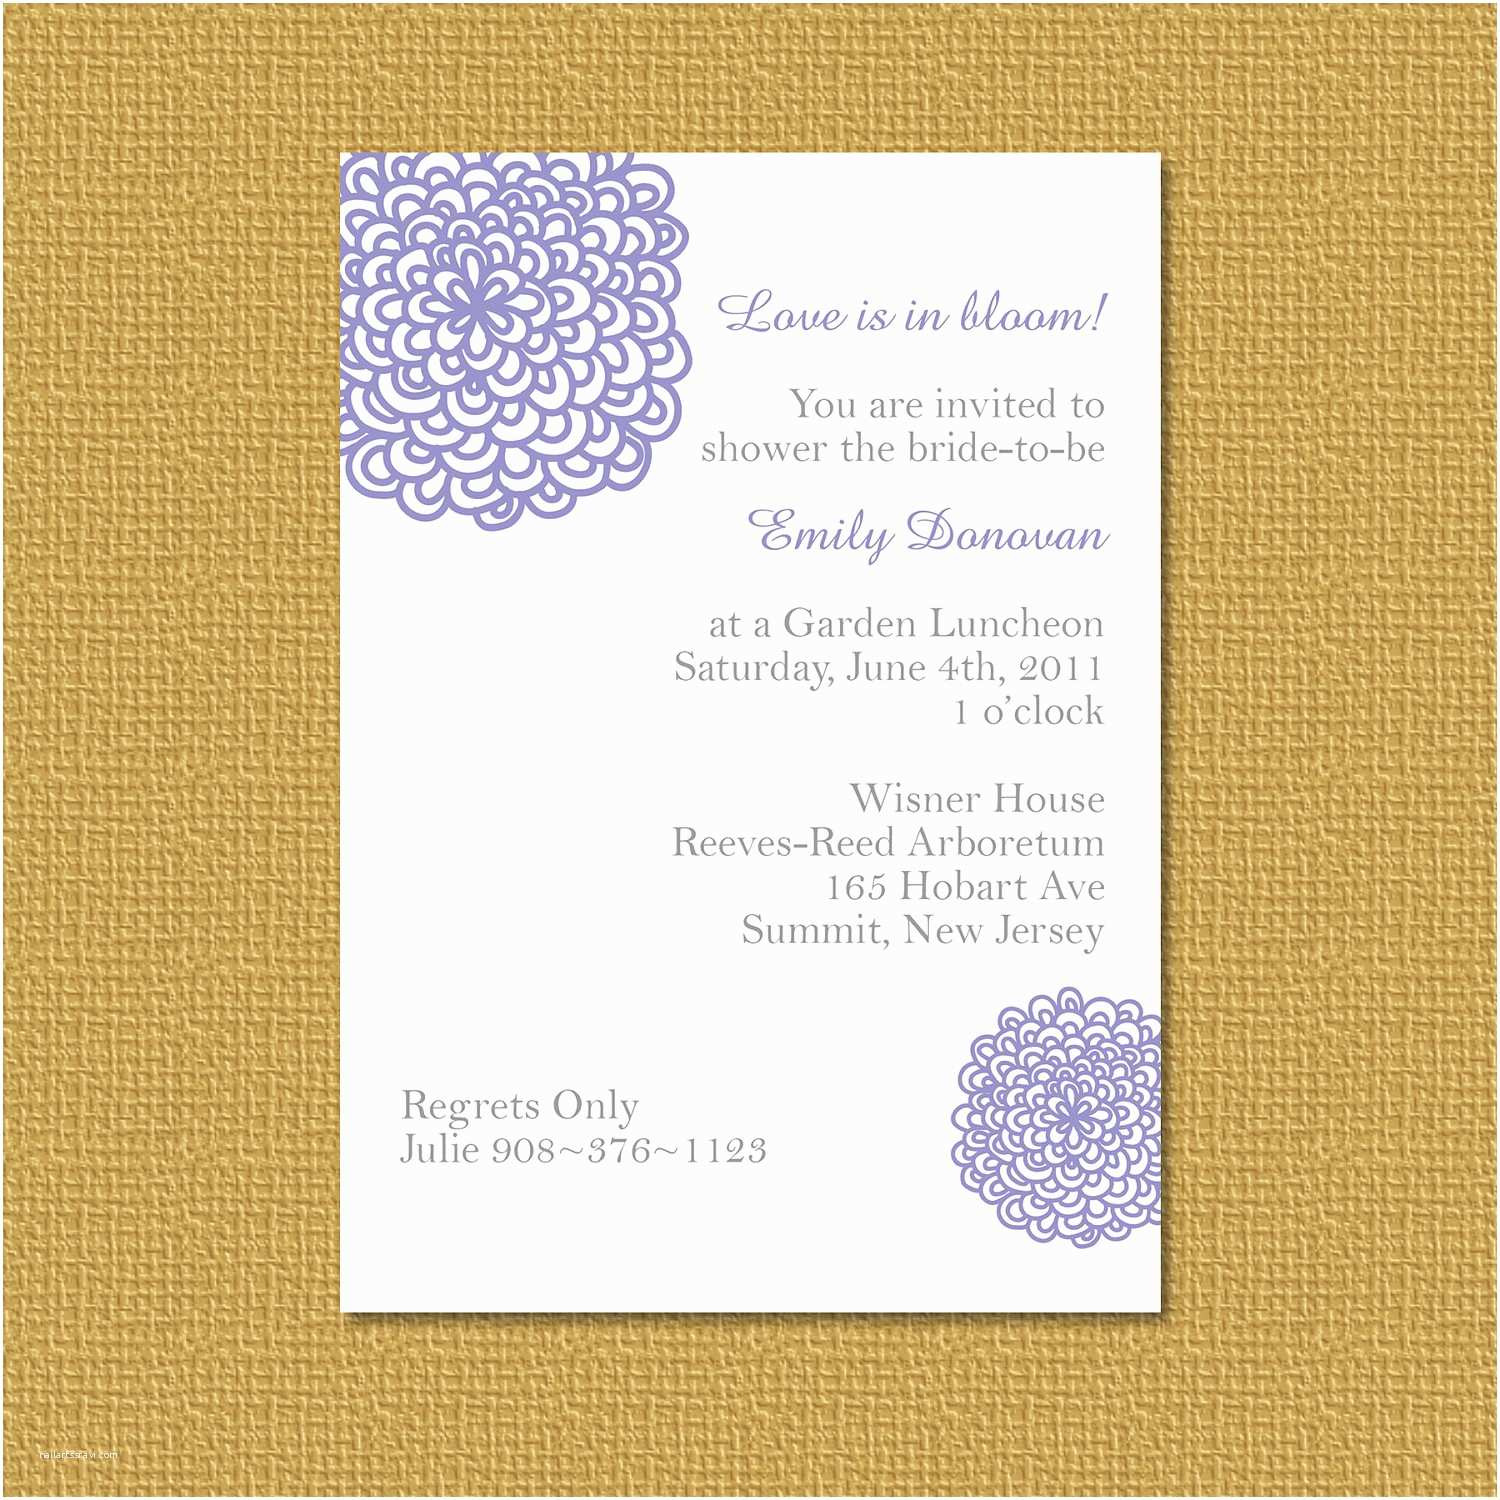 How to Word A Wedding Shower Invitation asking for Money Bridal Shower Invitation Wording Ideas Template